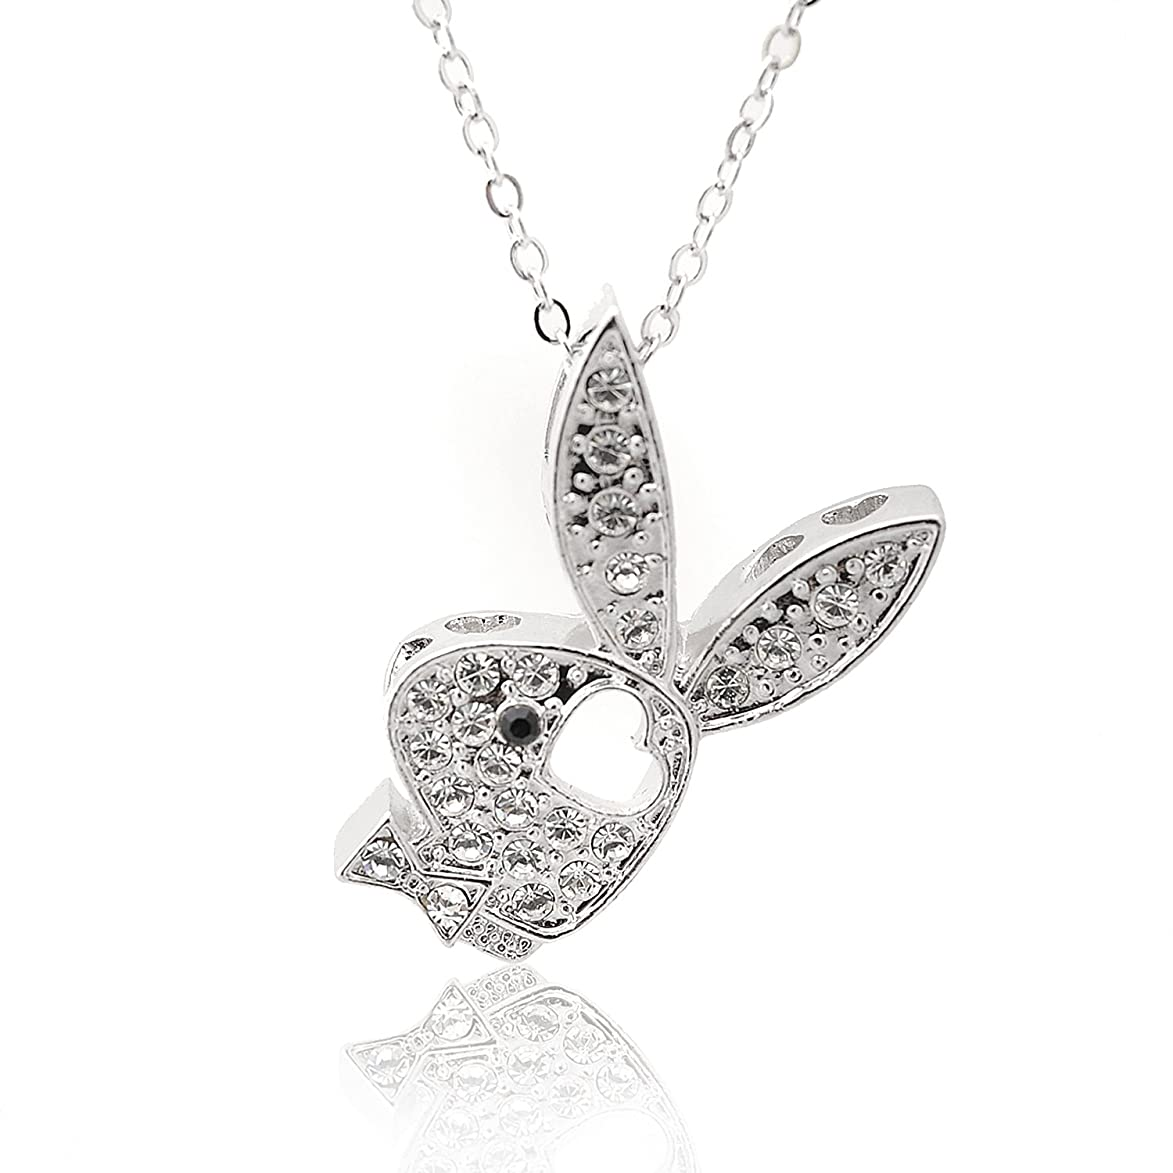 Spinningdaisy Silver Plated Mounted Play Bunny Boy with Heart Necklace gax332619289279